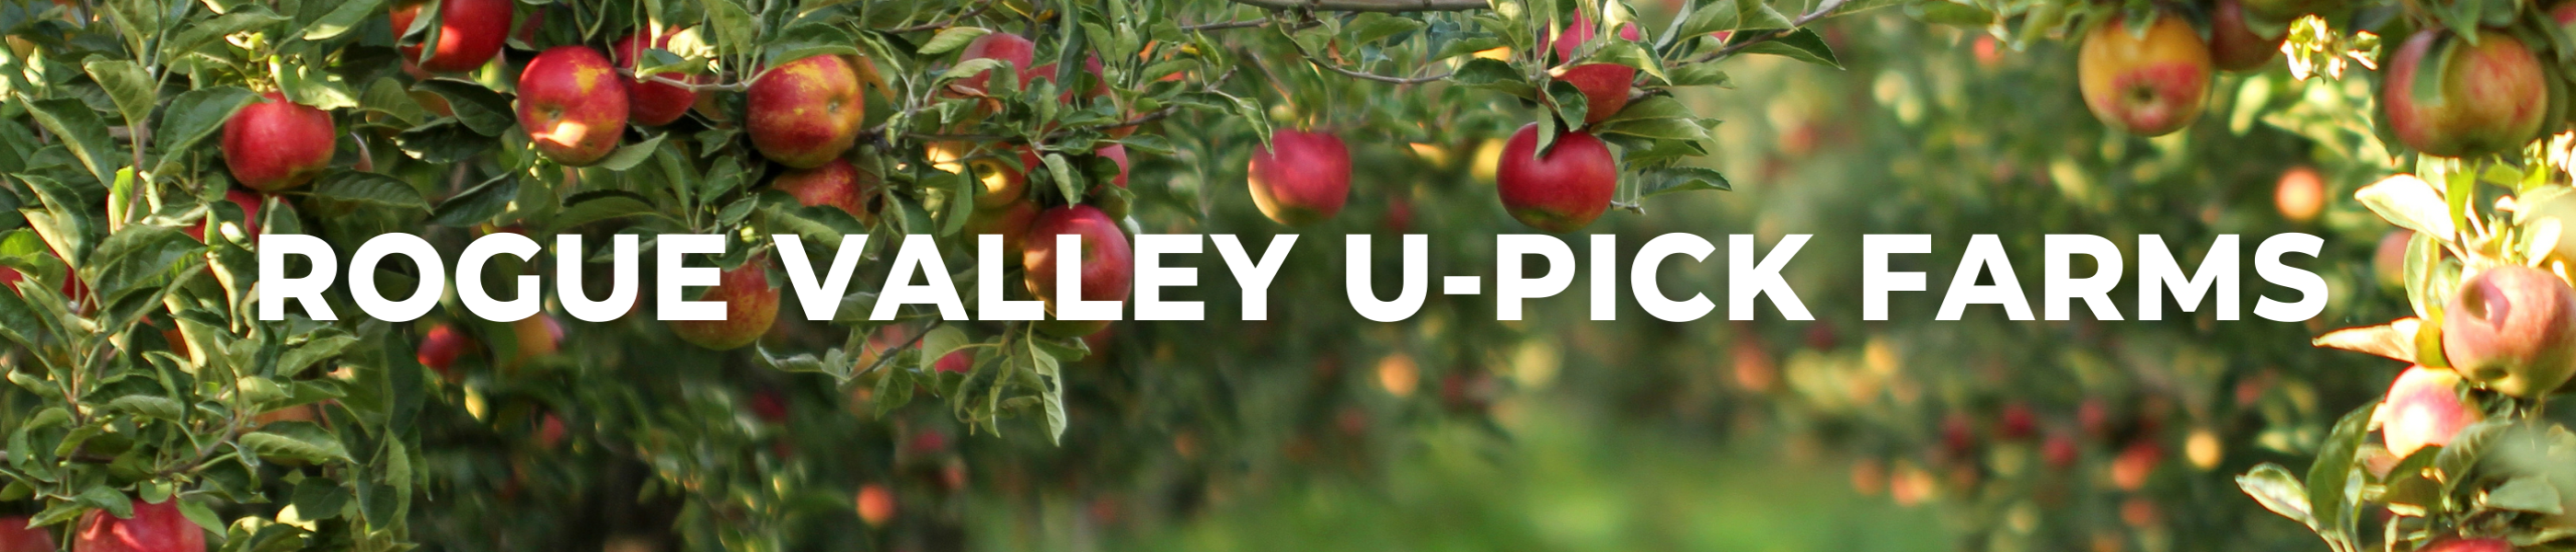 Rogue valley U-pick farms, agriculture in the rogue valley, things to do in Medford, fall fun, support local farmers, support local buisinesses, u pick, farming